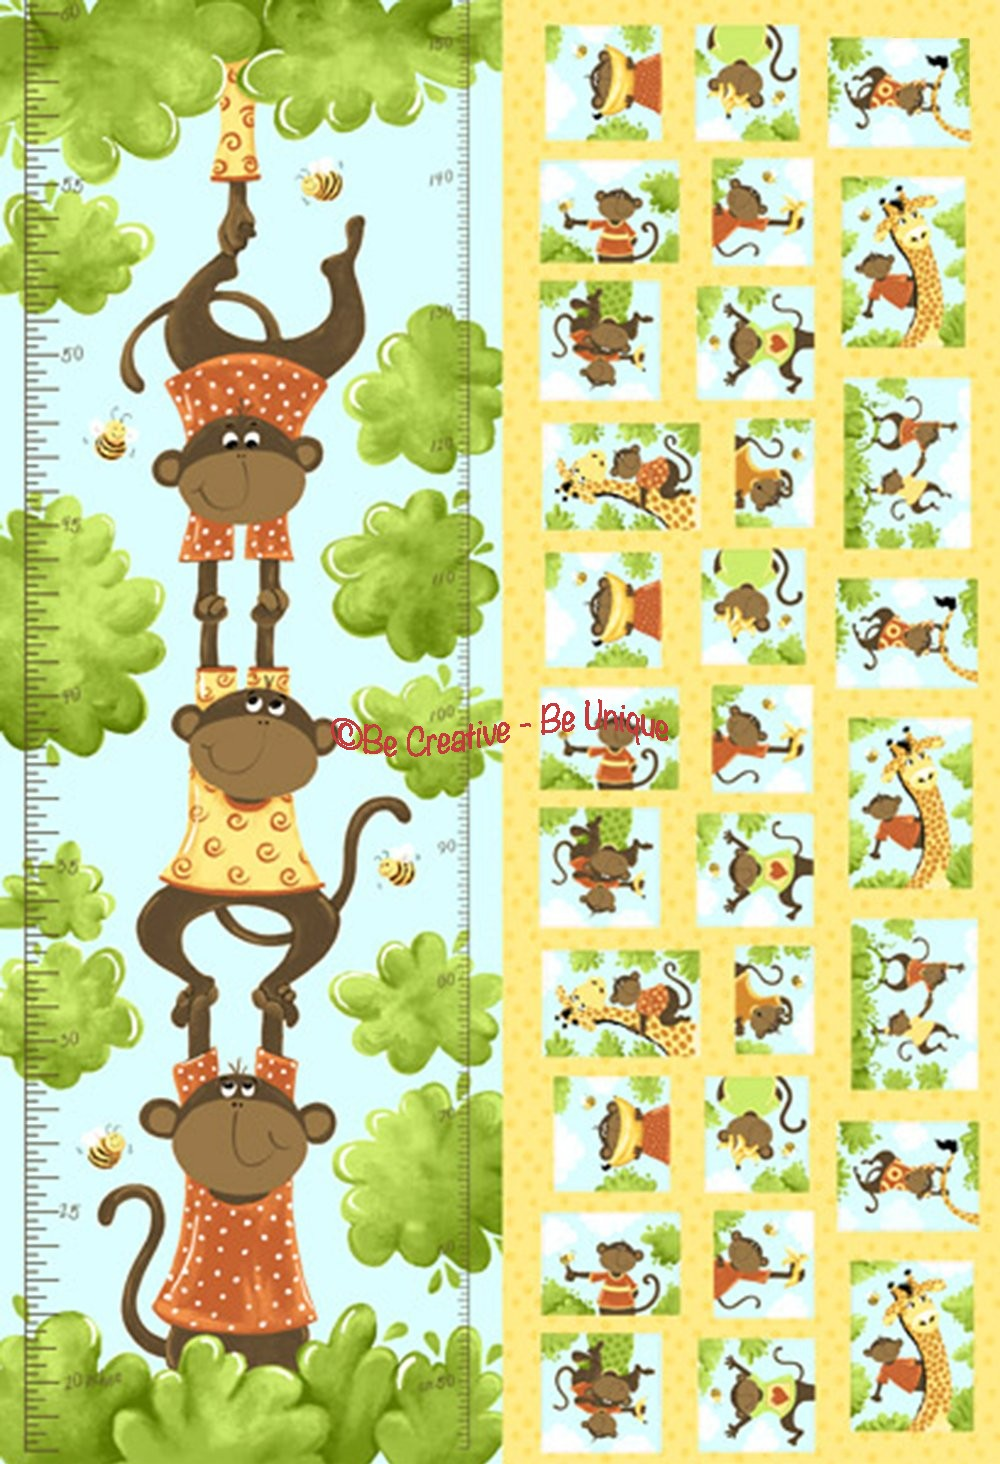 Cotton by Susybee - Oolie, the Monkey Growth Chart